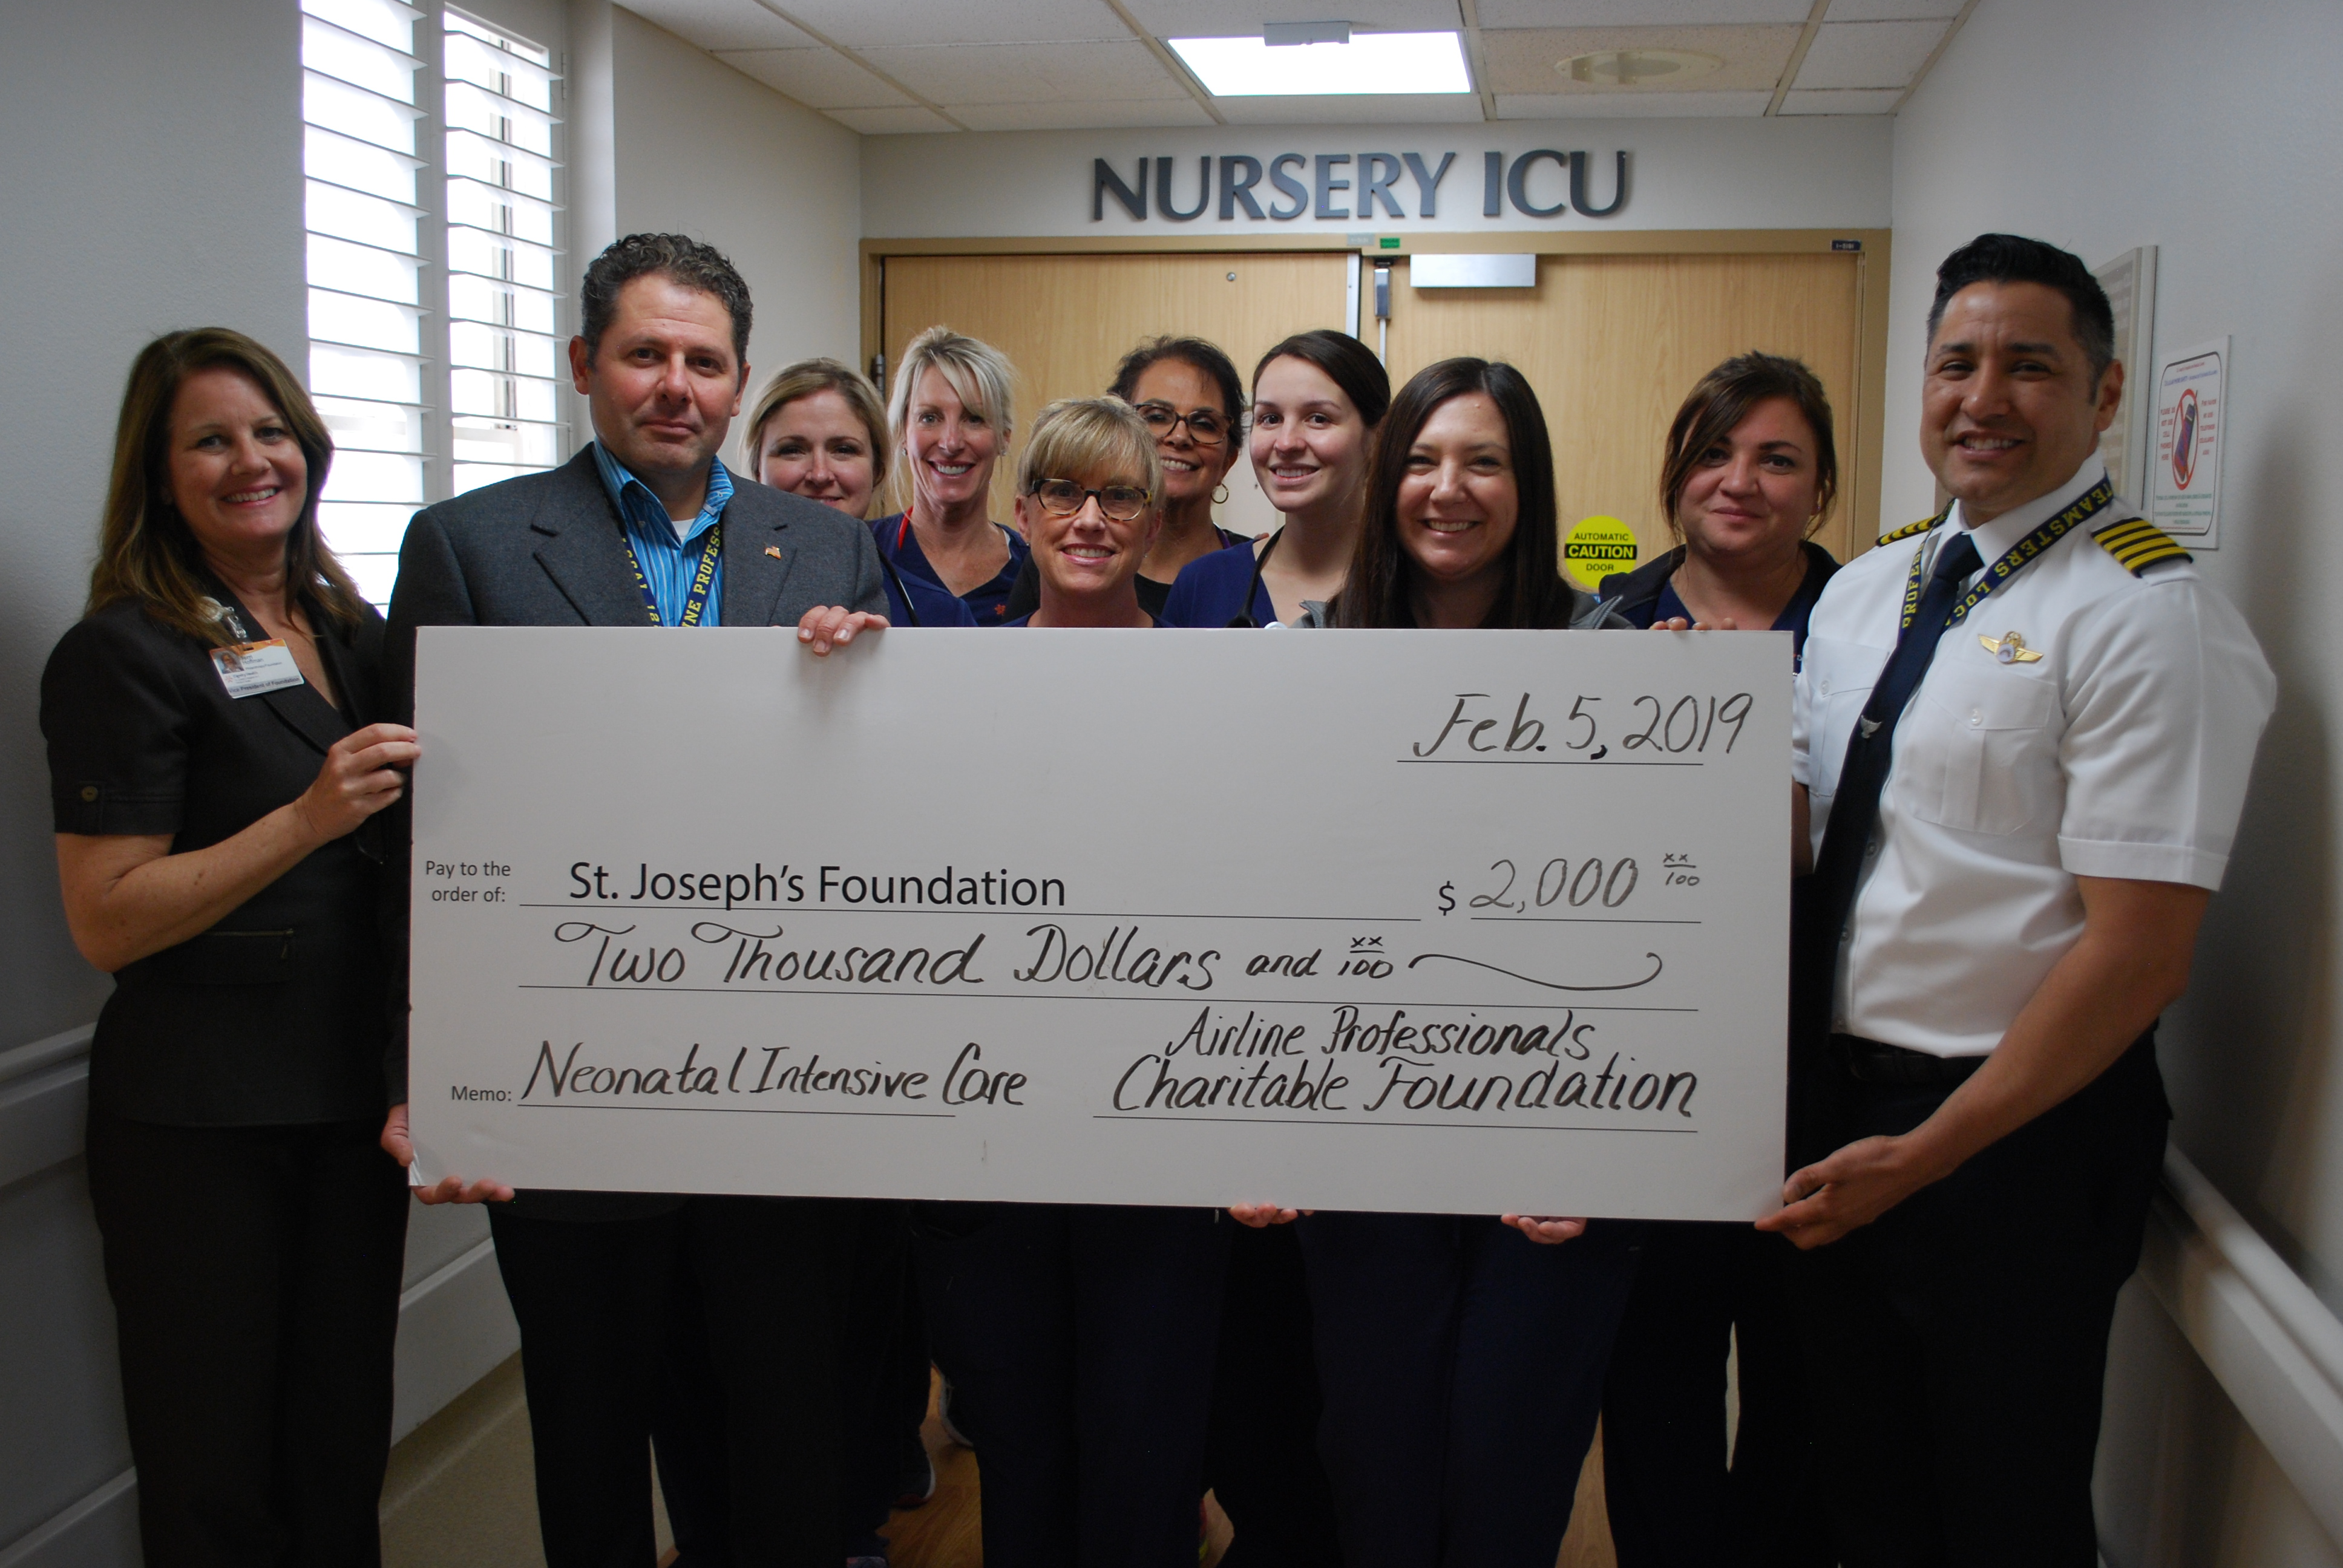 NICU nurses gather for check presentation